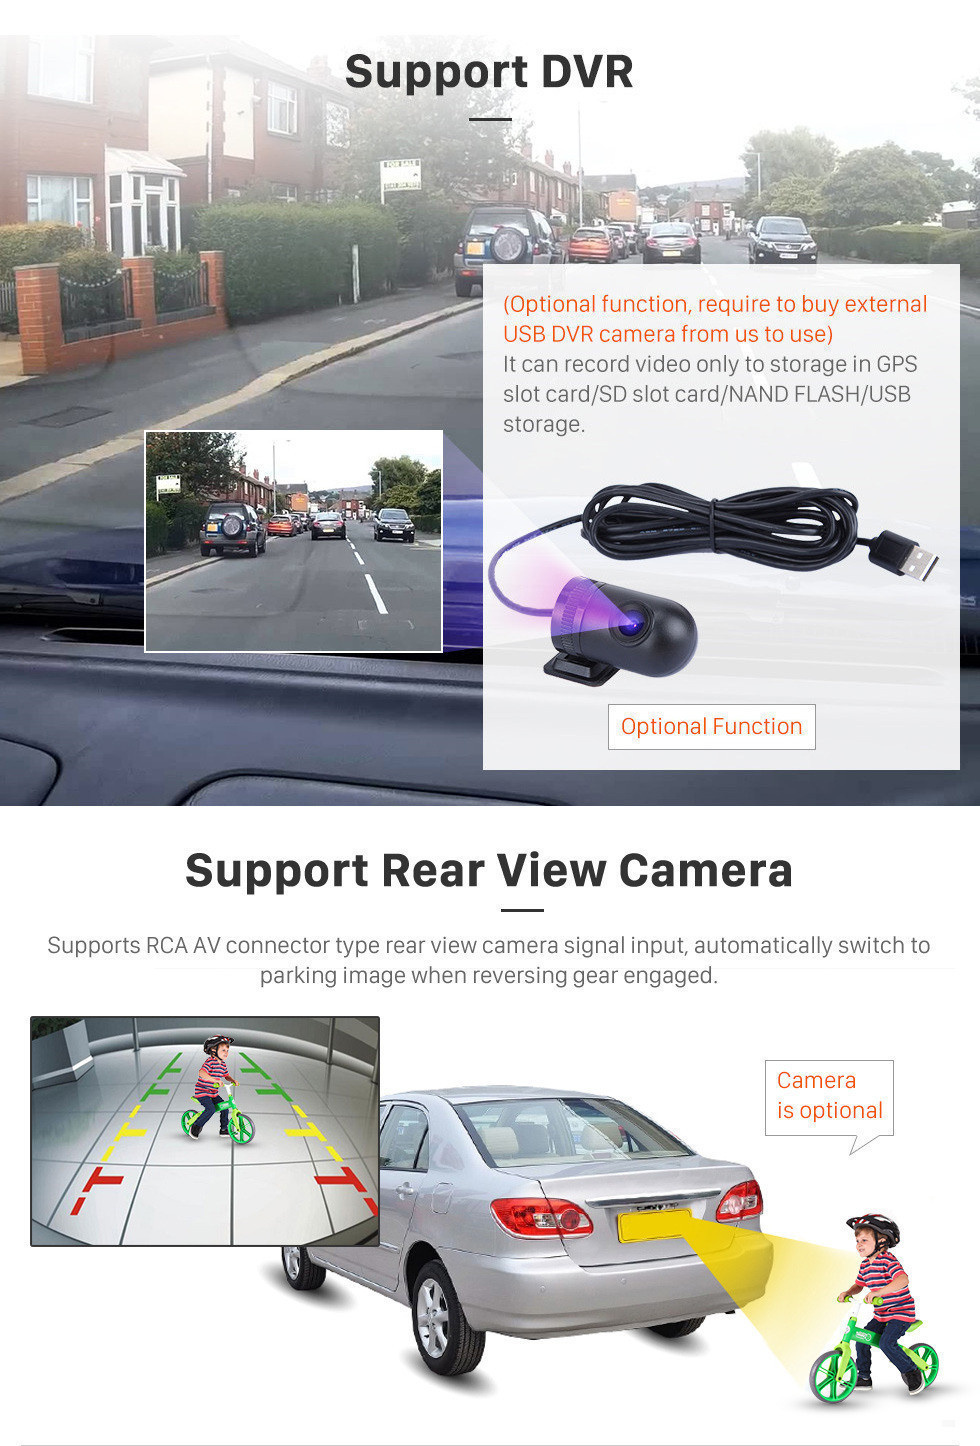 Seicane Android 10.0 Autoradio GPS Car A/V System for 2006-2012 Mercedes Benz Viano Vito with 1024*600 HD Touch Screen CD DVD Player AUX 3G WiFi Bluetooth OBD2 Mirror Link Backup Camera Steering Wheel Control